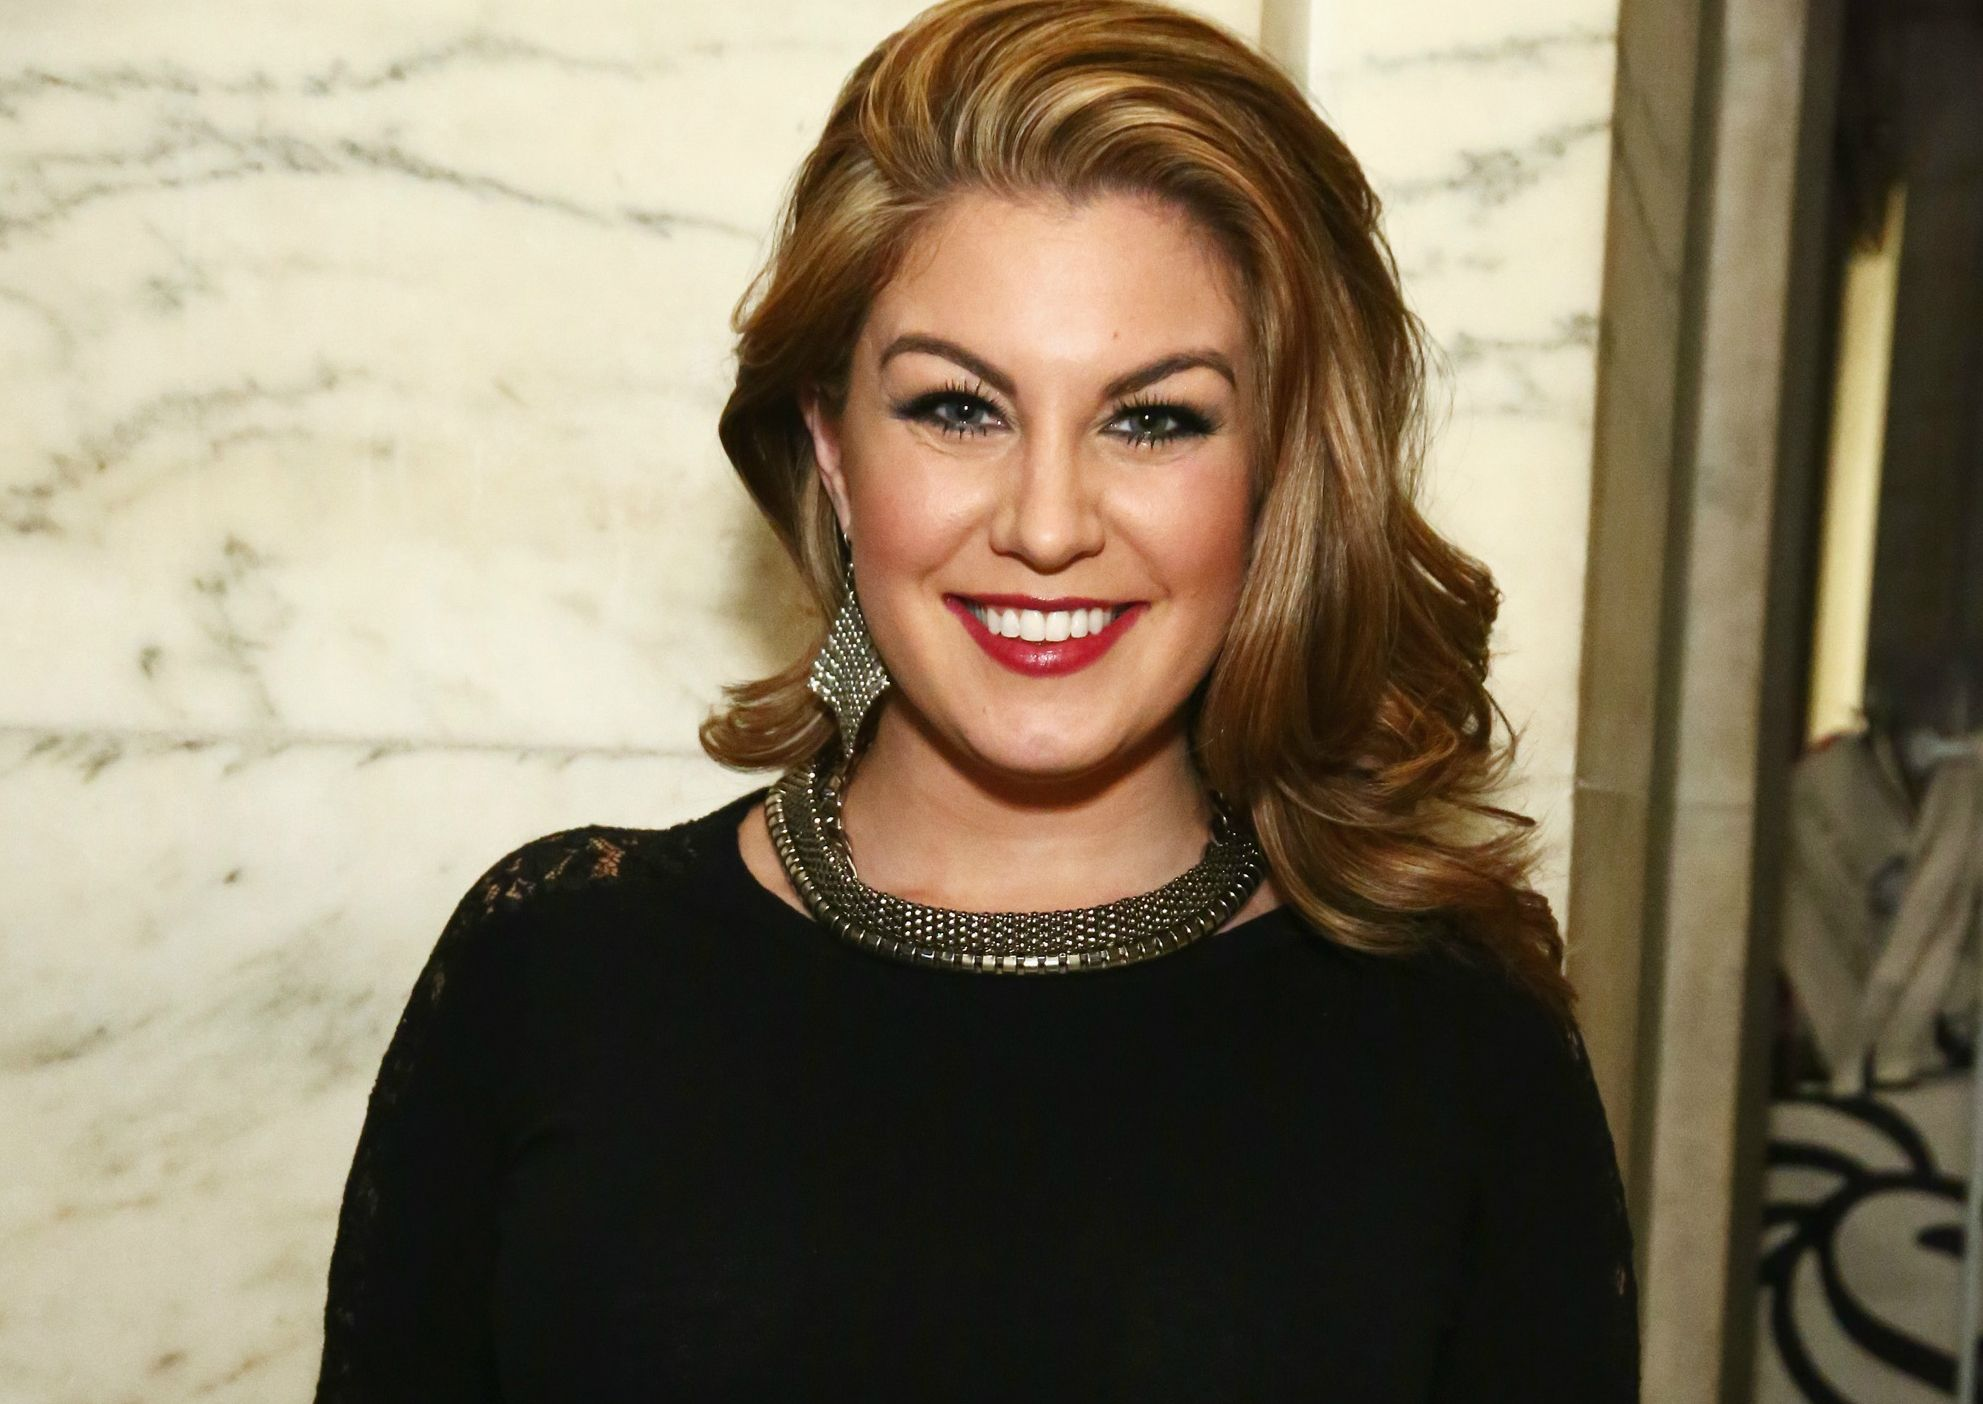 """Online Dating Sites >> Former Miss America Mallory Hagan is Considering Legal Action After """"Derogatory"""" Emails by CEO ..."""